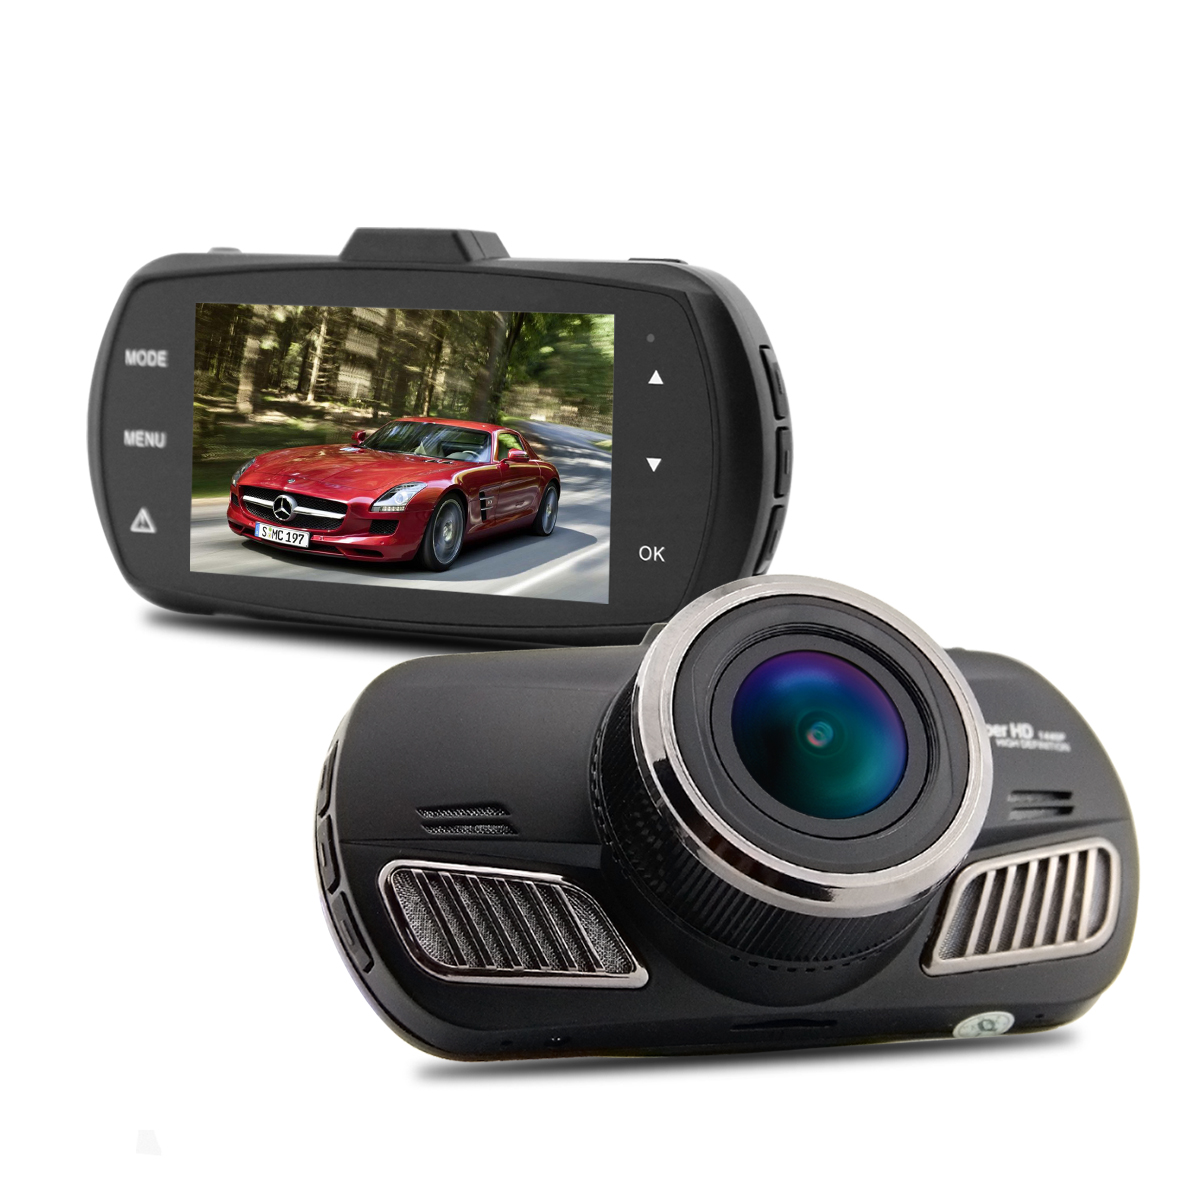 Car camera ambarella a12 mini dvr full hd 2560*1440p with gps module video recorder dash cam night vi